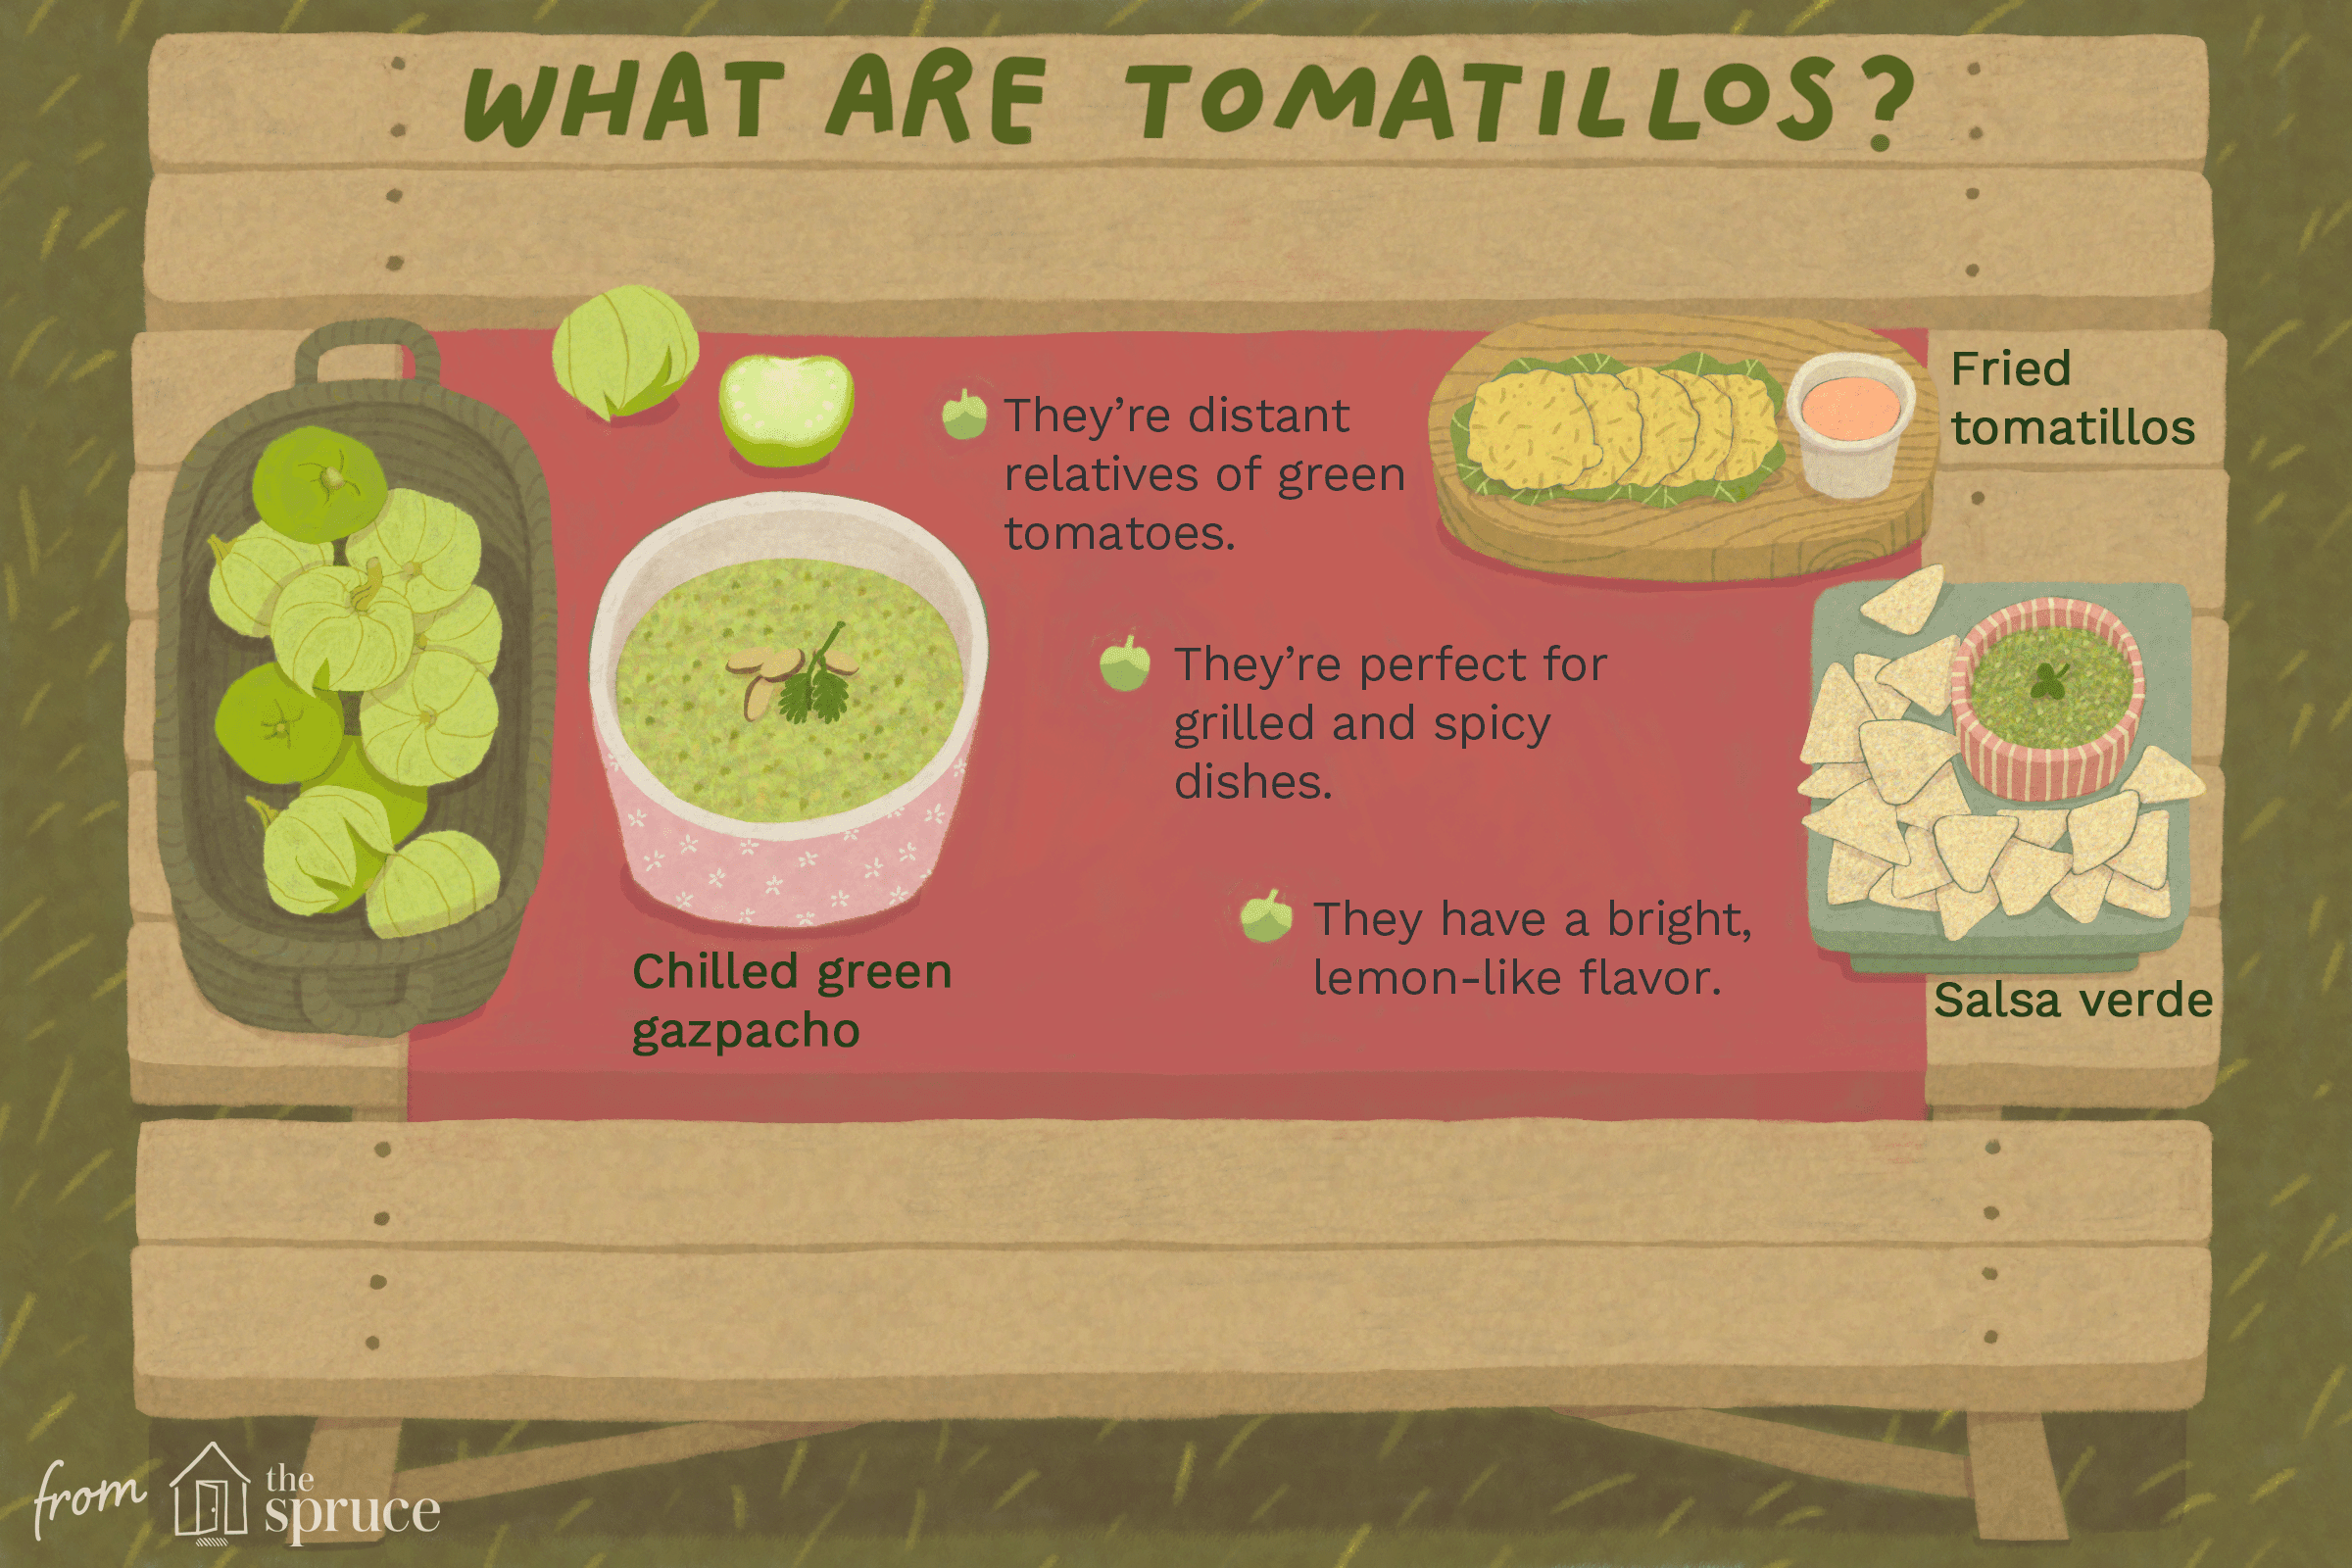 facts about tomatillos